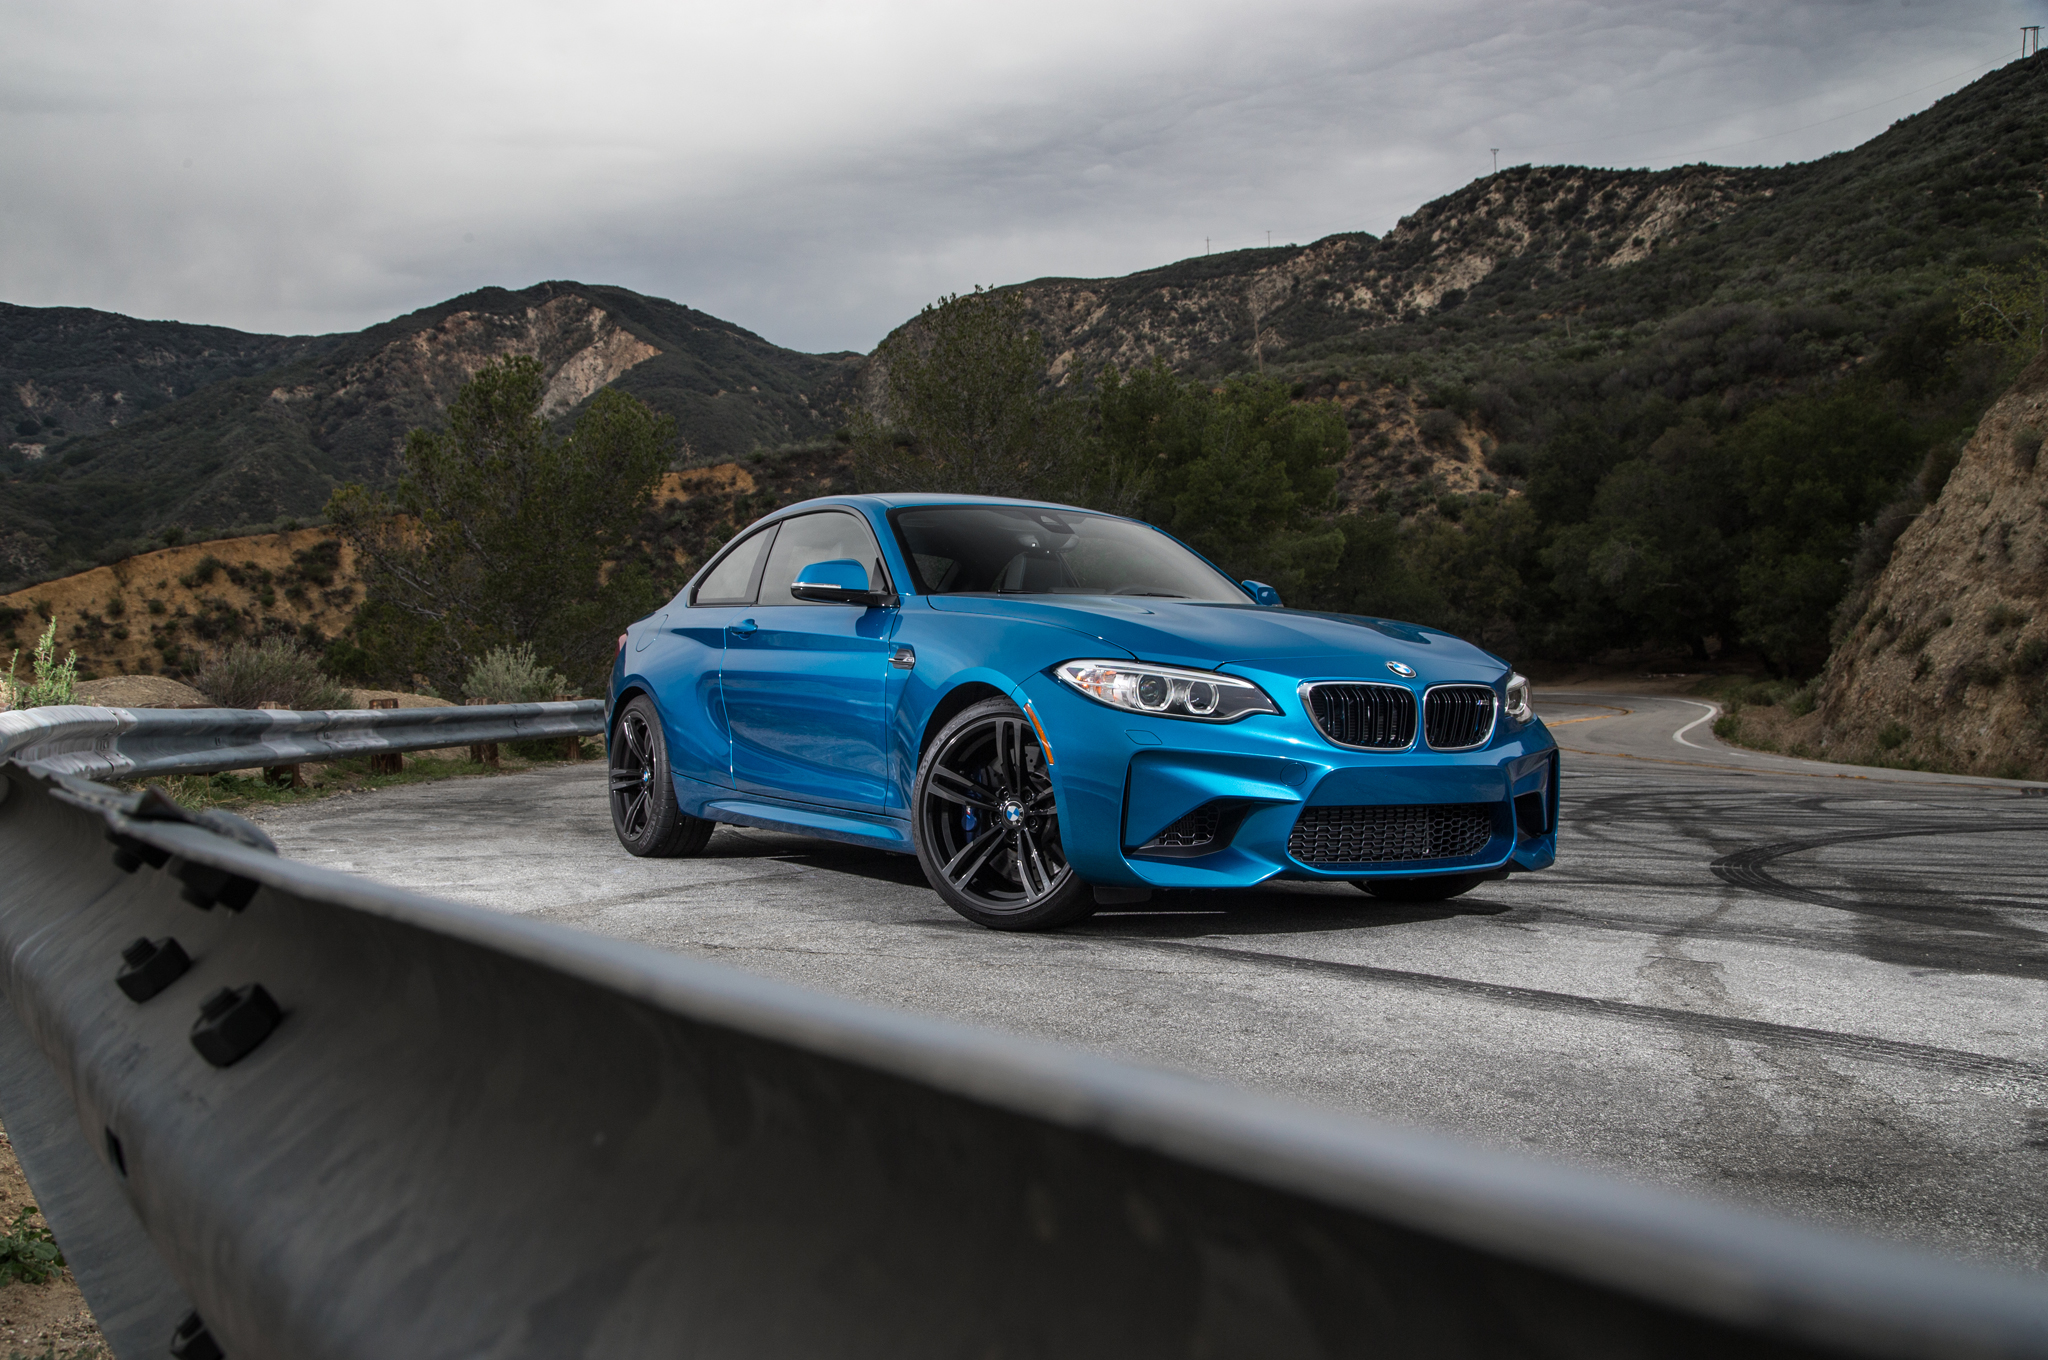 2016 BMW M2 Exterior Blue Metallic (Photo 47 of 61)